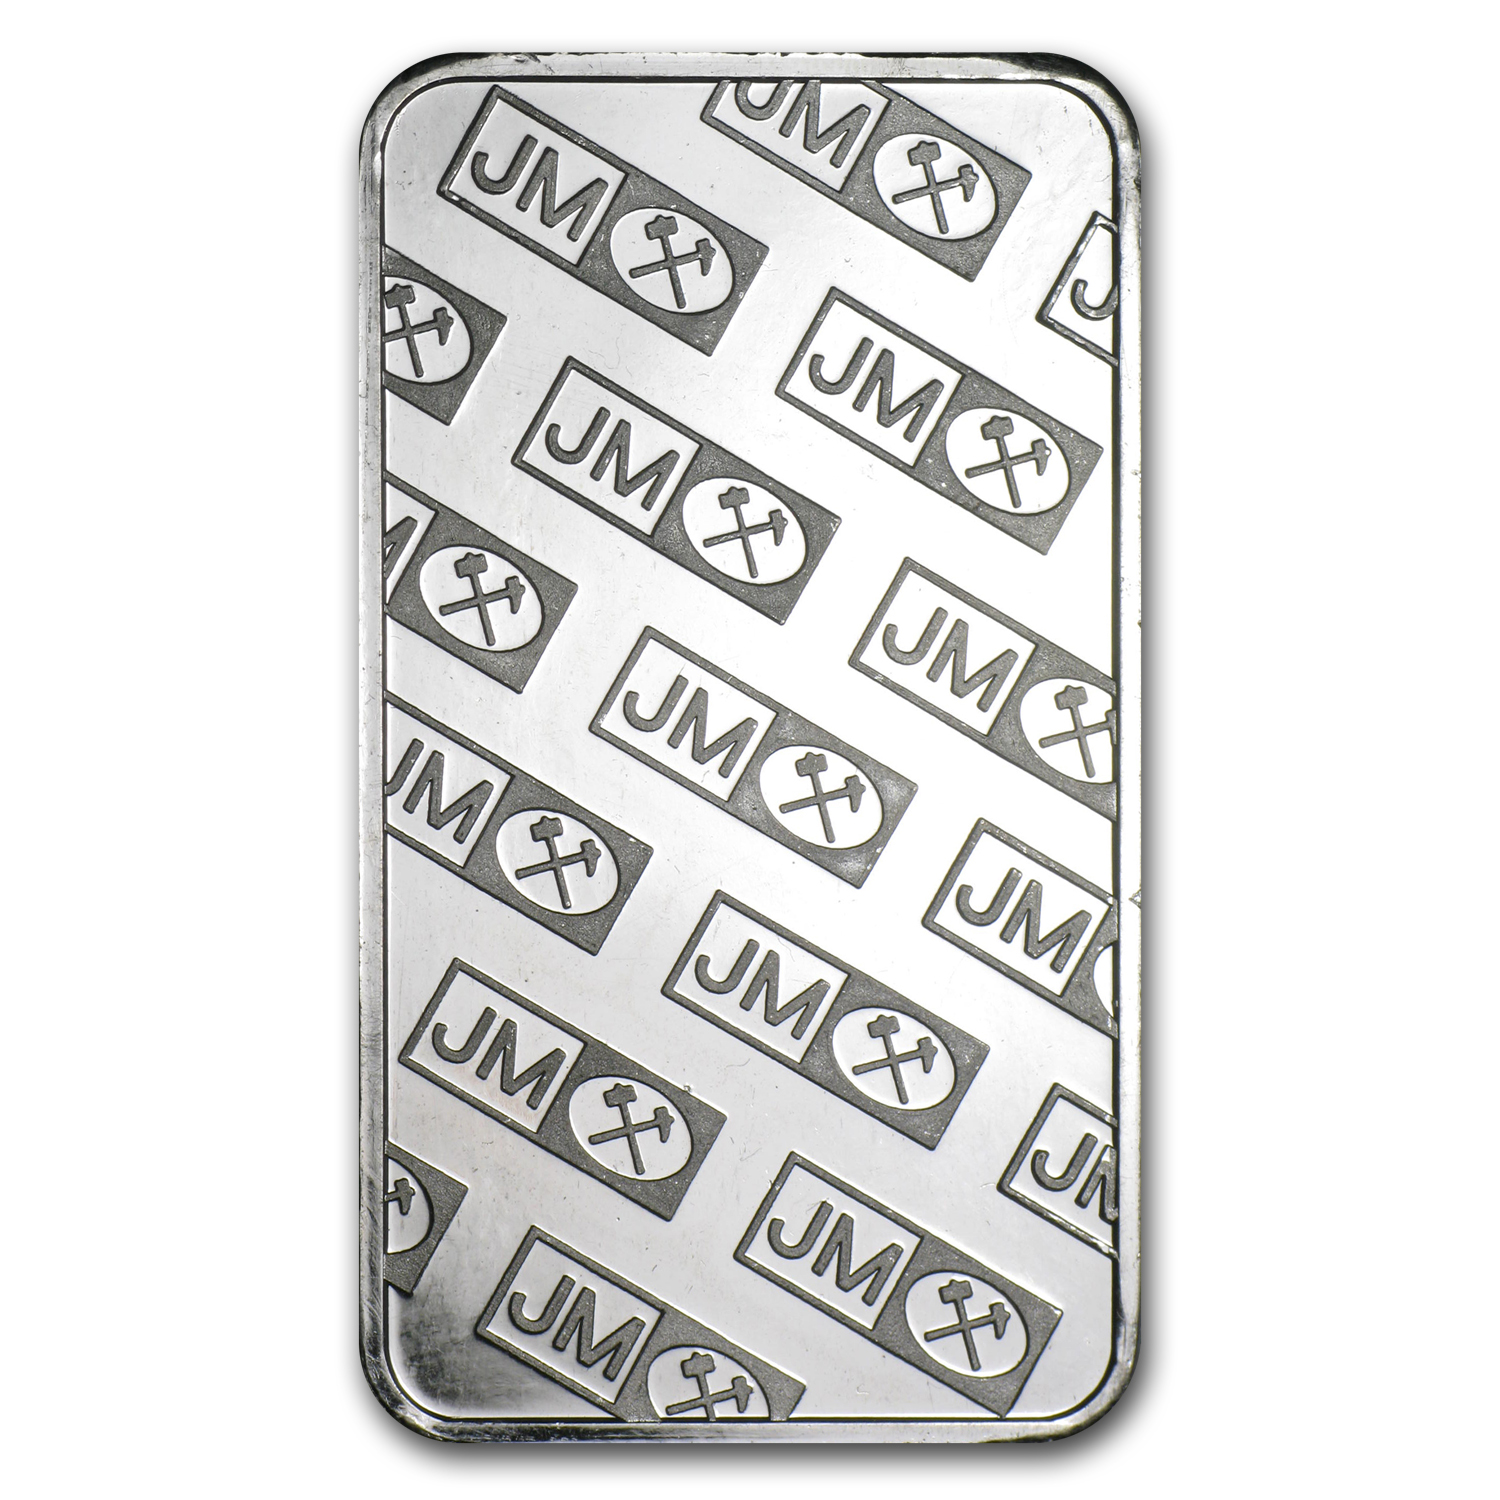 5 oz Platinum Bar - Johnson Matthey